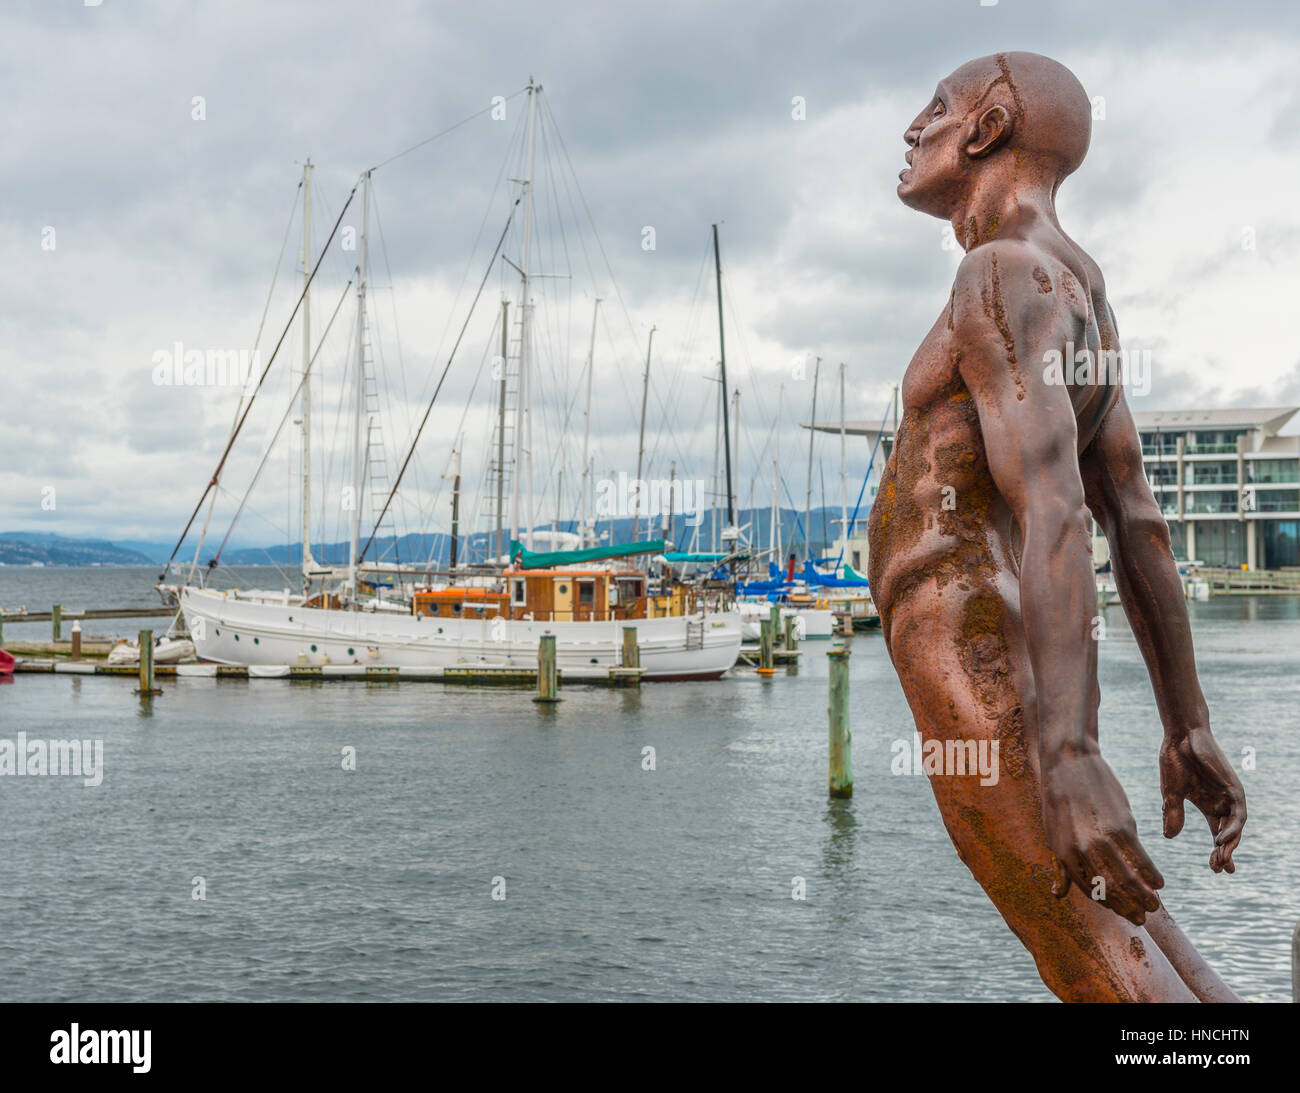 La statue, la consolation du vent, Wellington Harbour, North Island, New Zealand Photo Stock